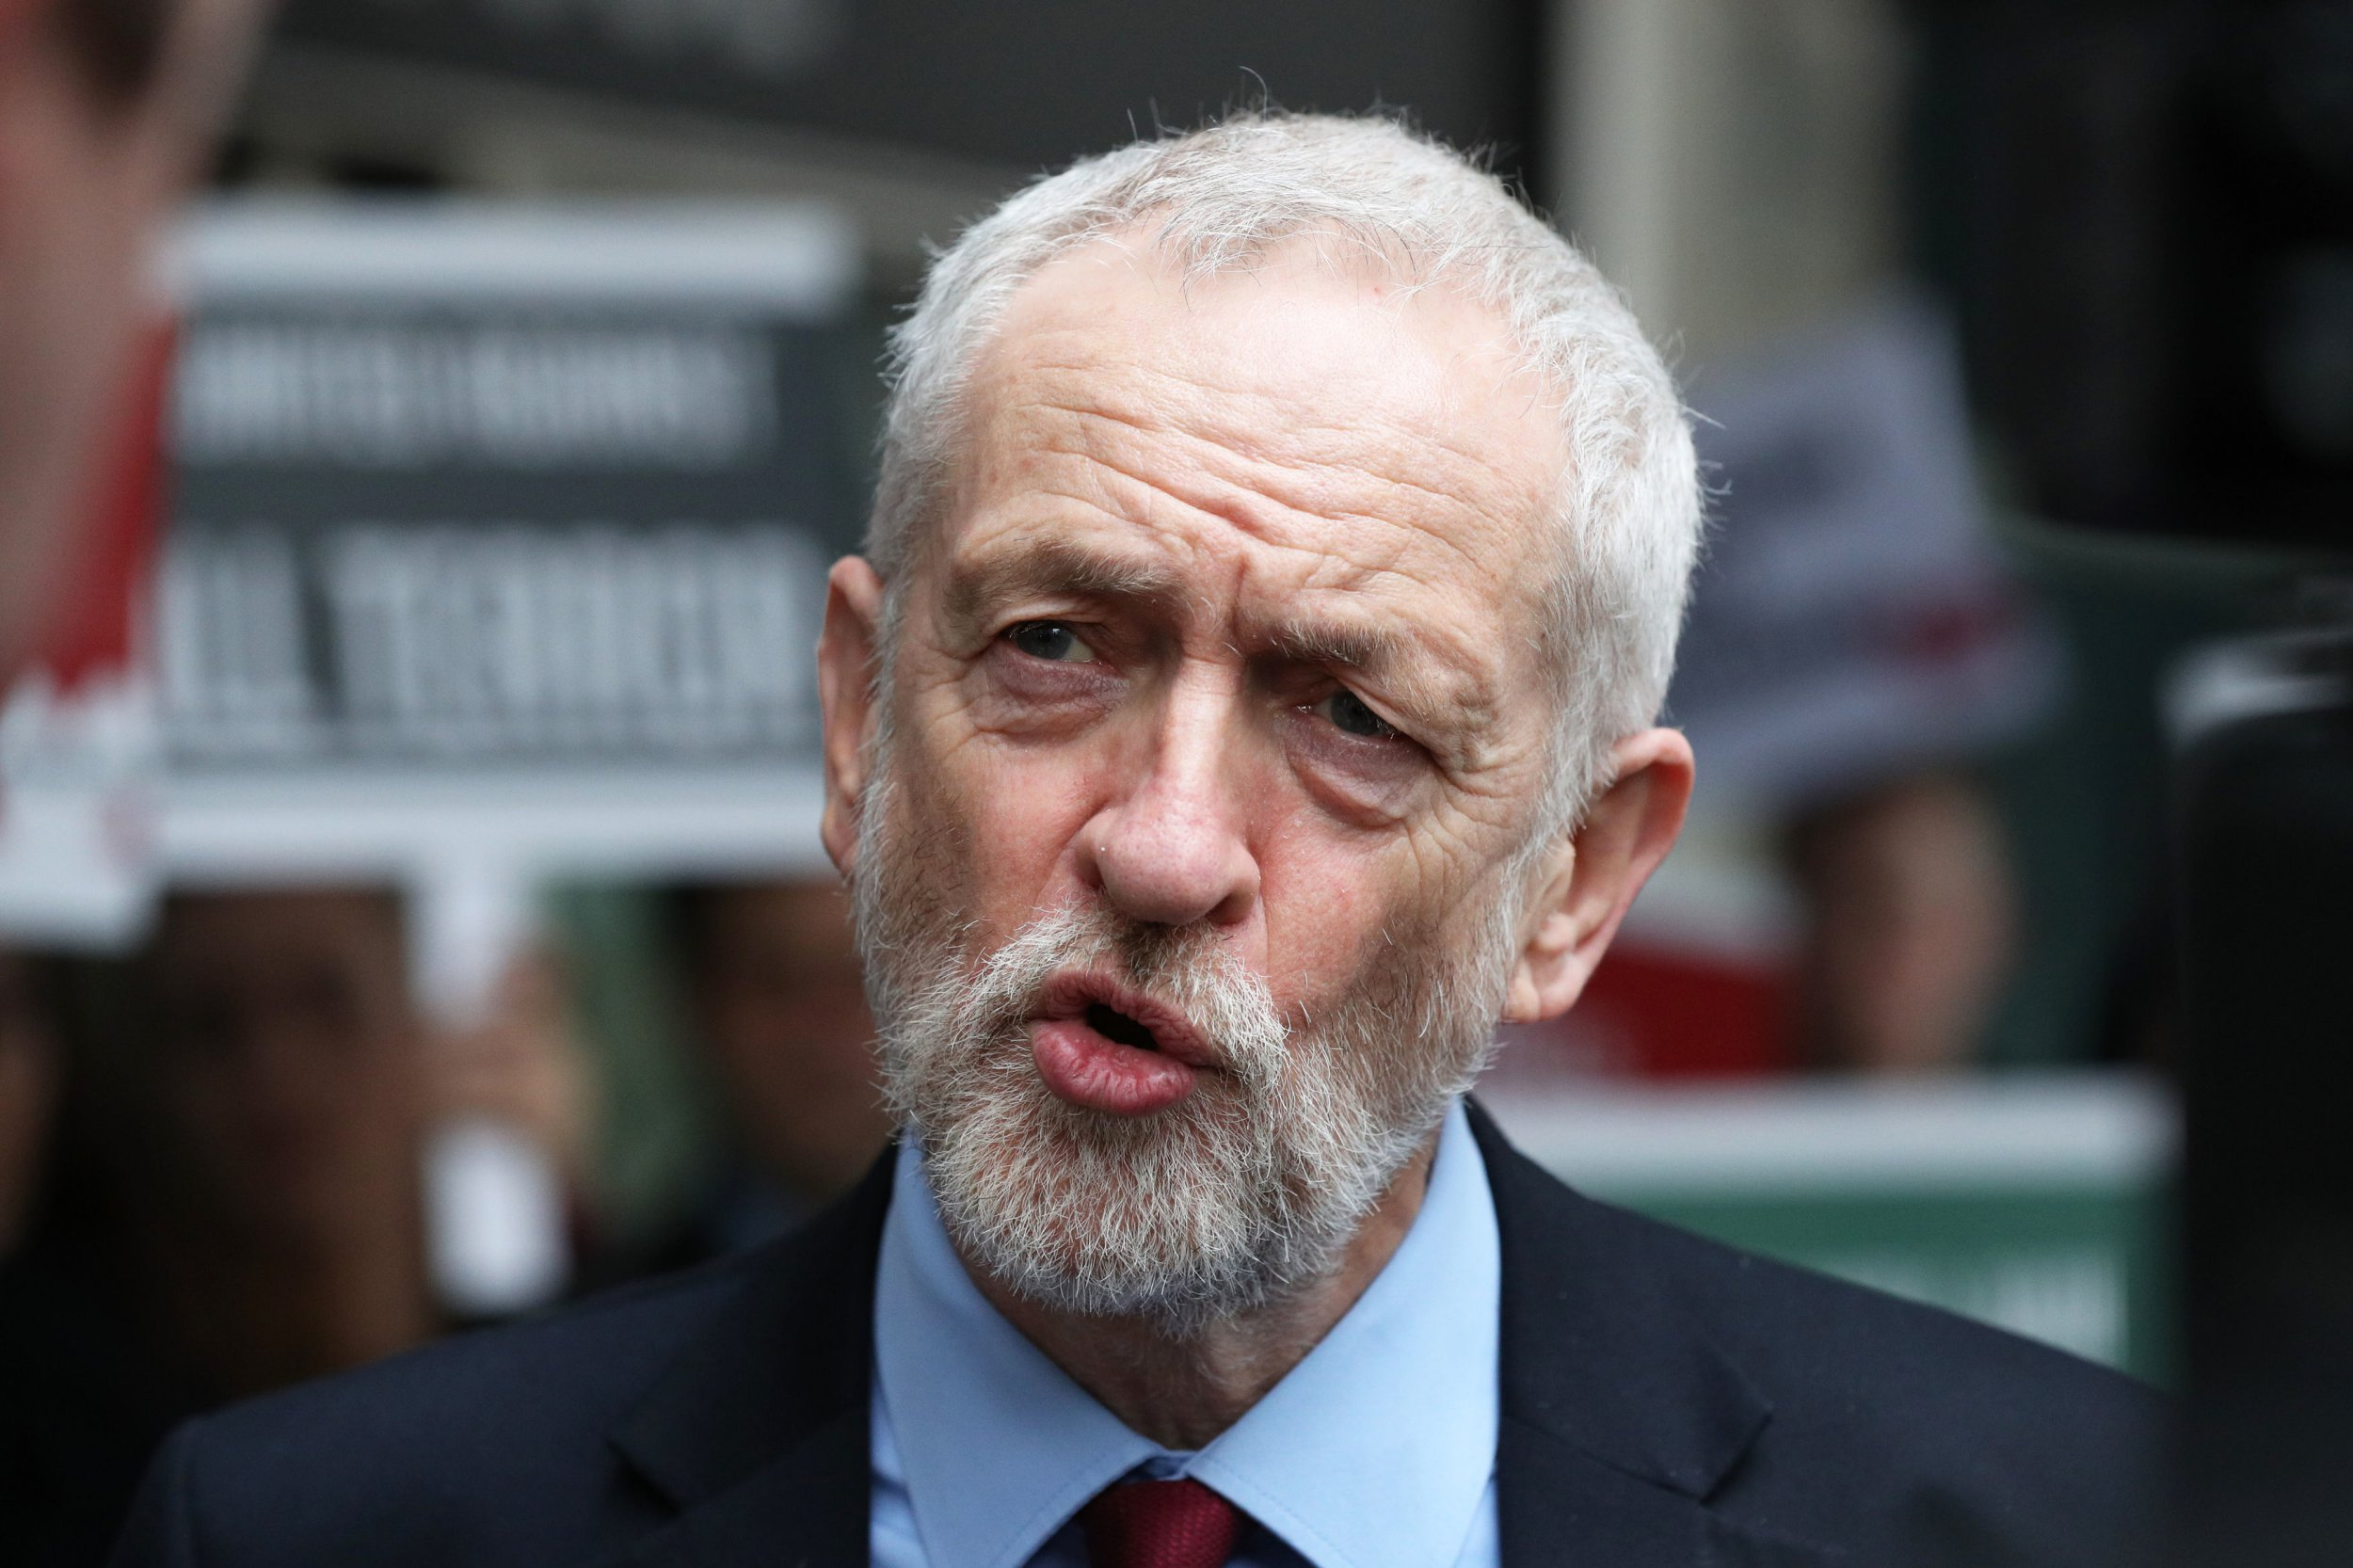 Jeremy Corbyn says Labour anti-Semitism evidence has been 'ignored or mislaid'